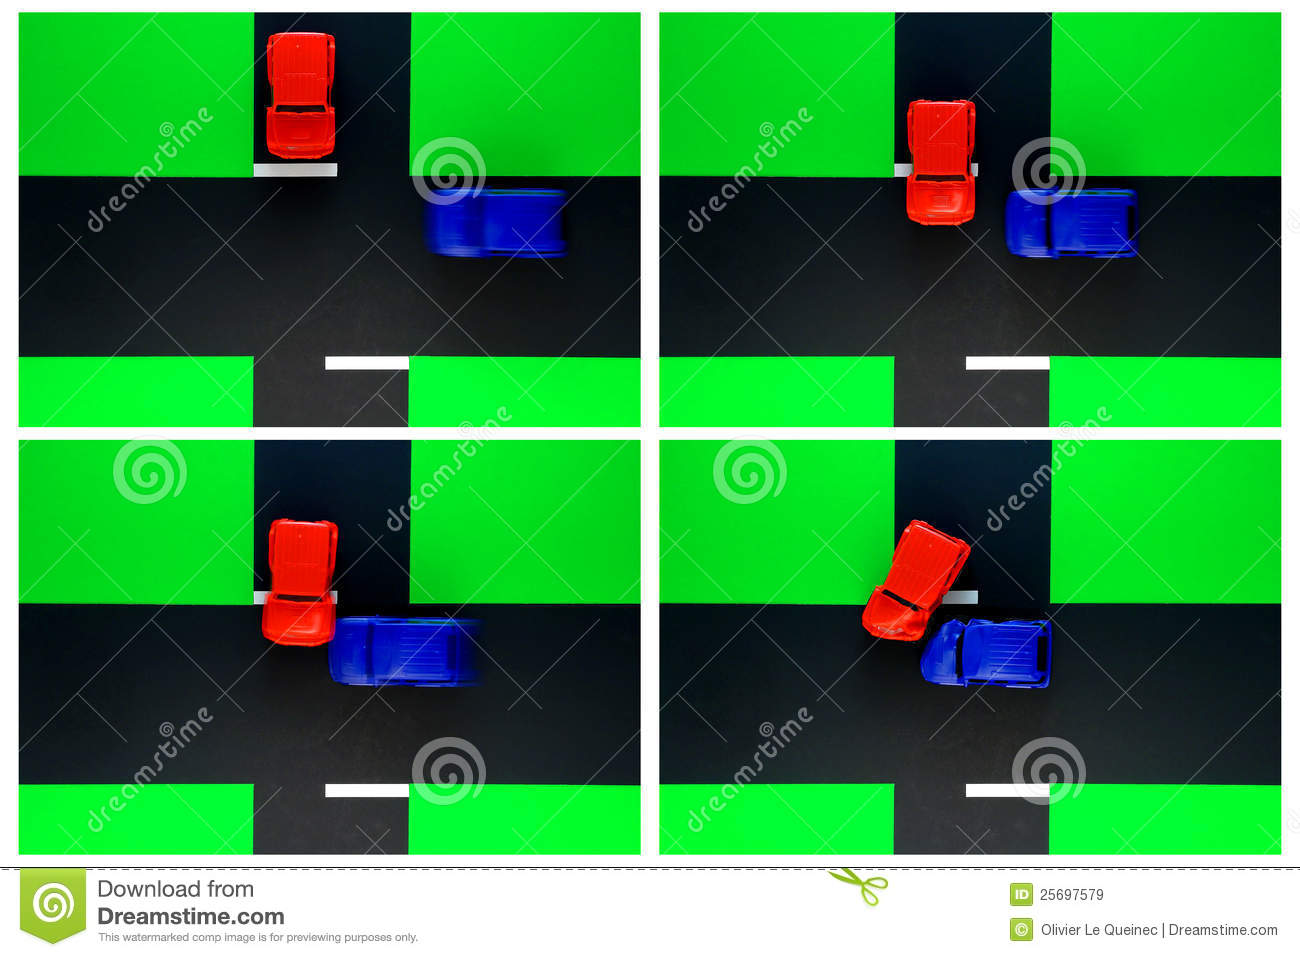 hight resolution of driver ed toy car crash of stop sign road accident